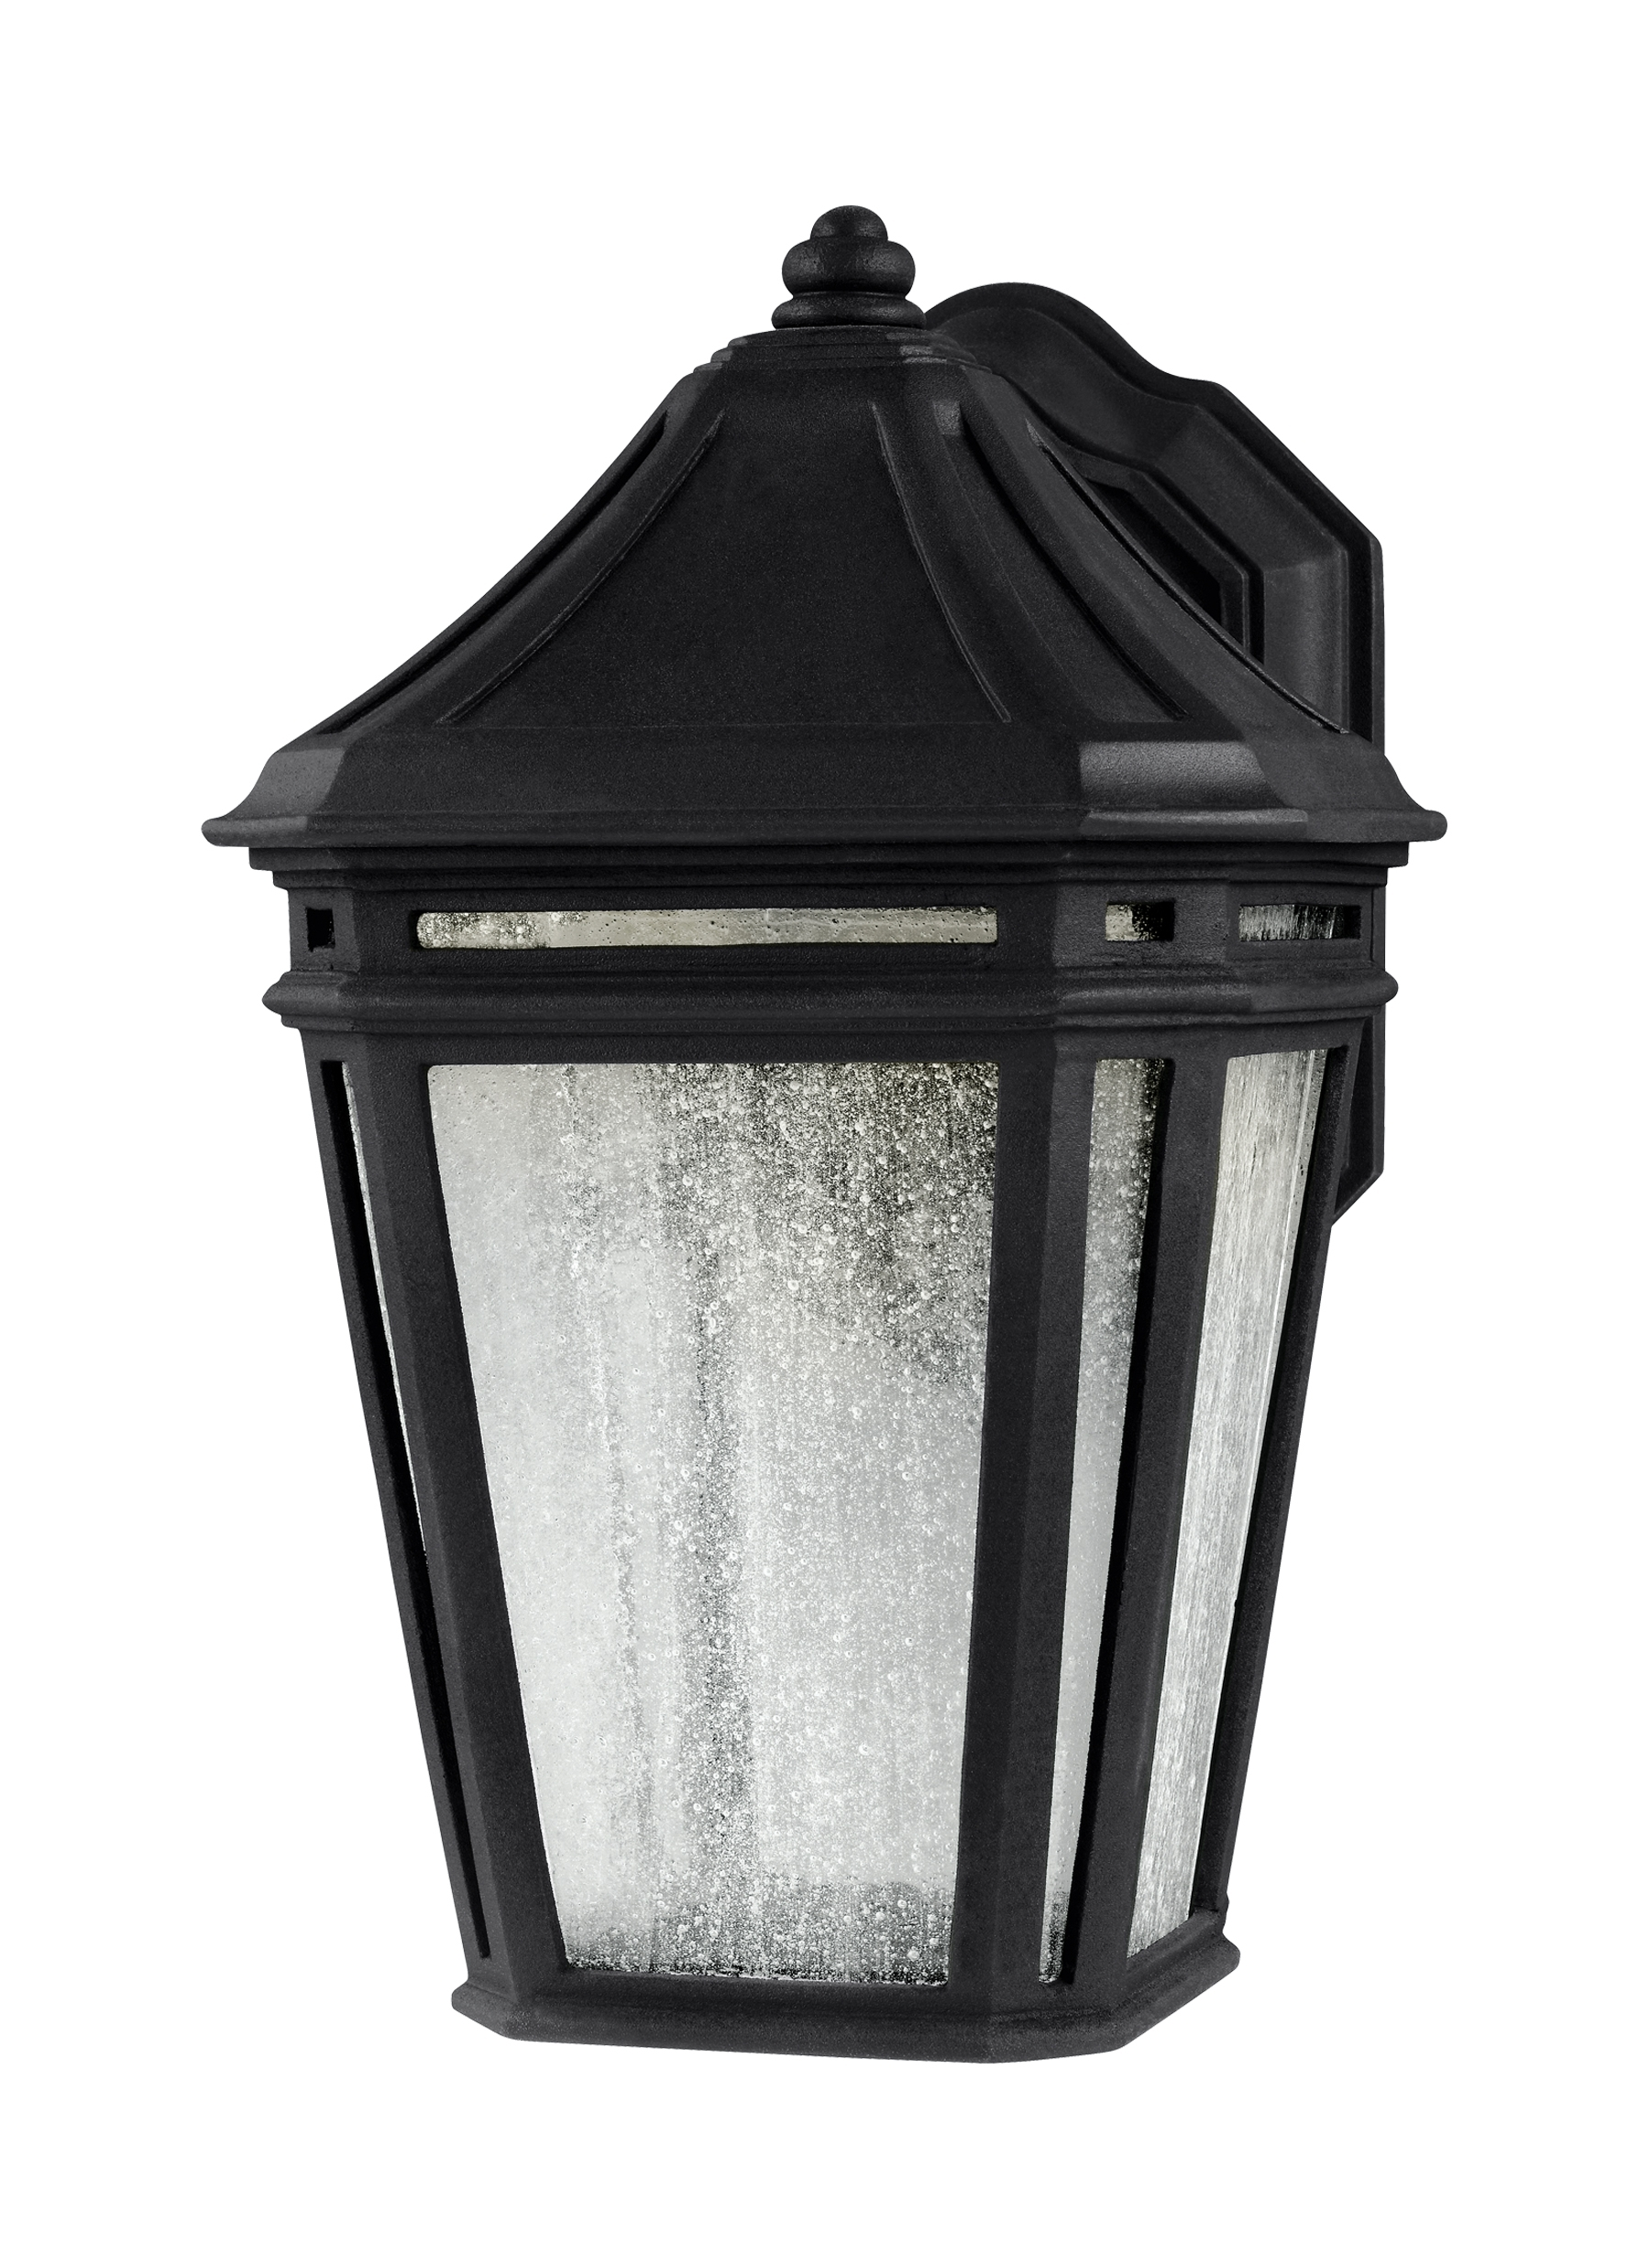 Wayfair Led Post Lights Throughout Trendy Ol11302Bk Led,led Outdoor Sconce,black (View 18 of 20)